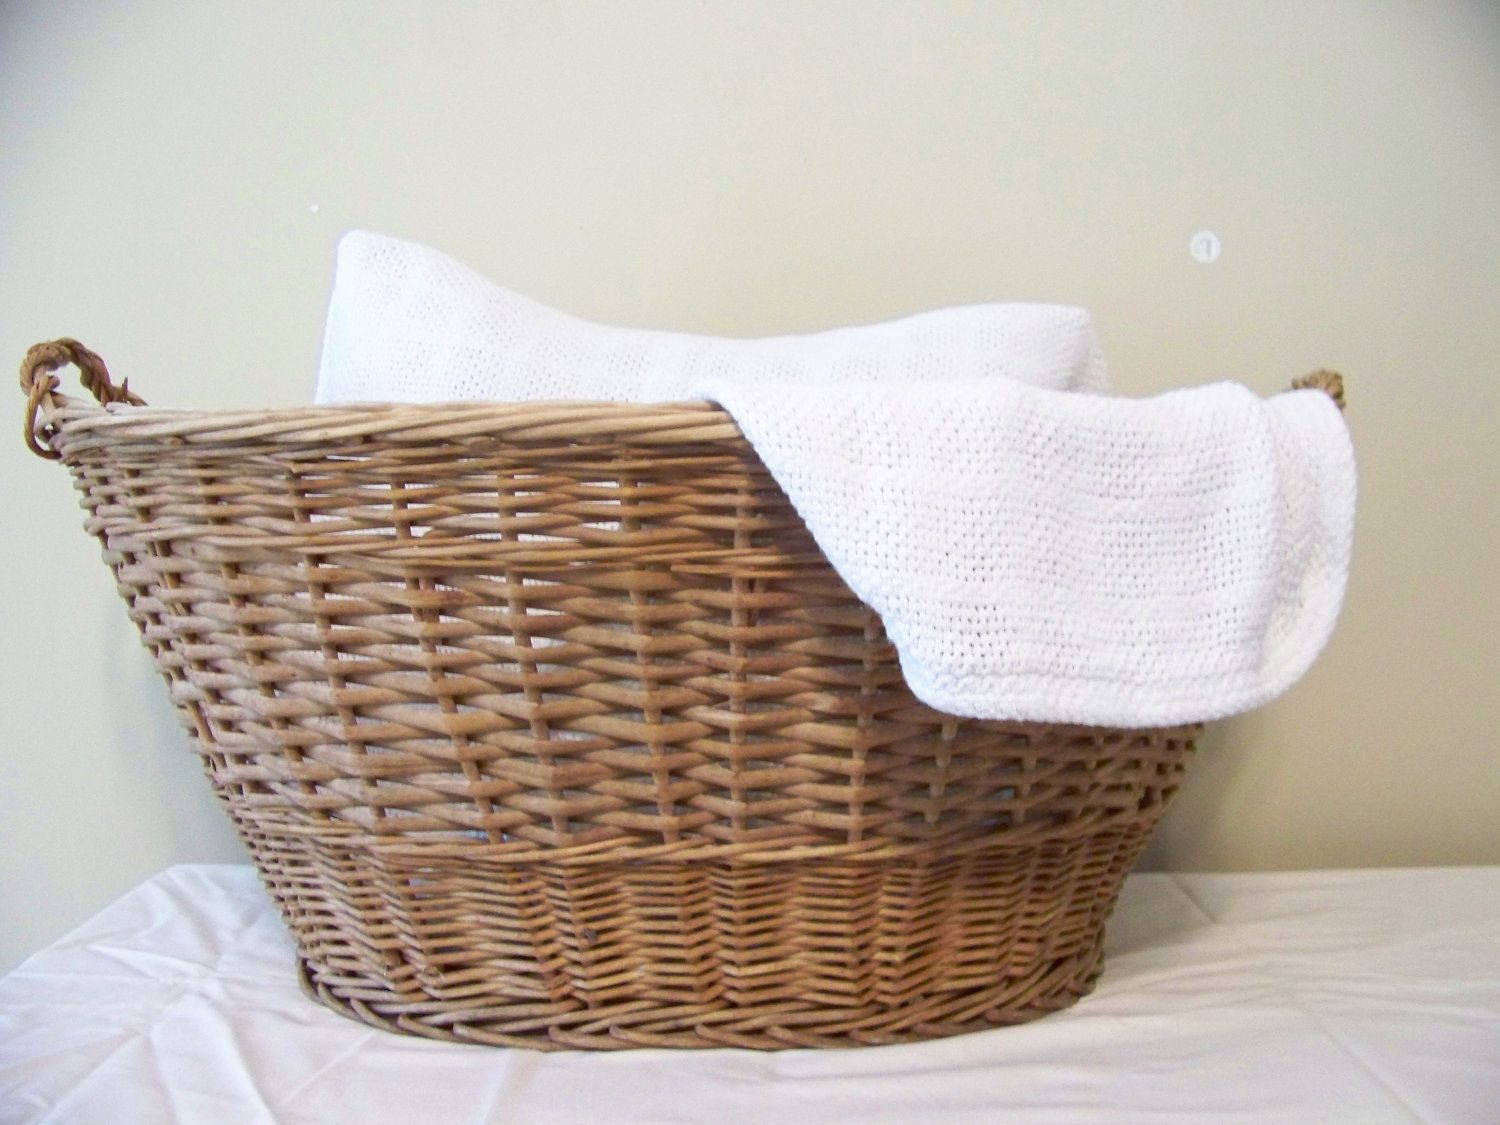 Vintage wooden wicker laundry basket farm fresh woven Laundry